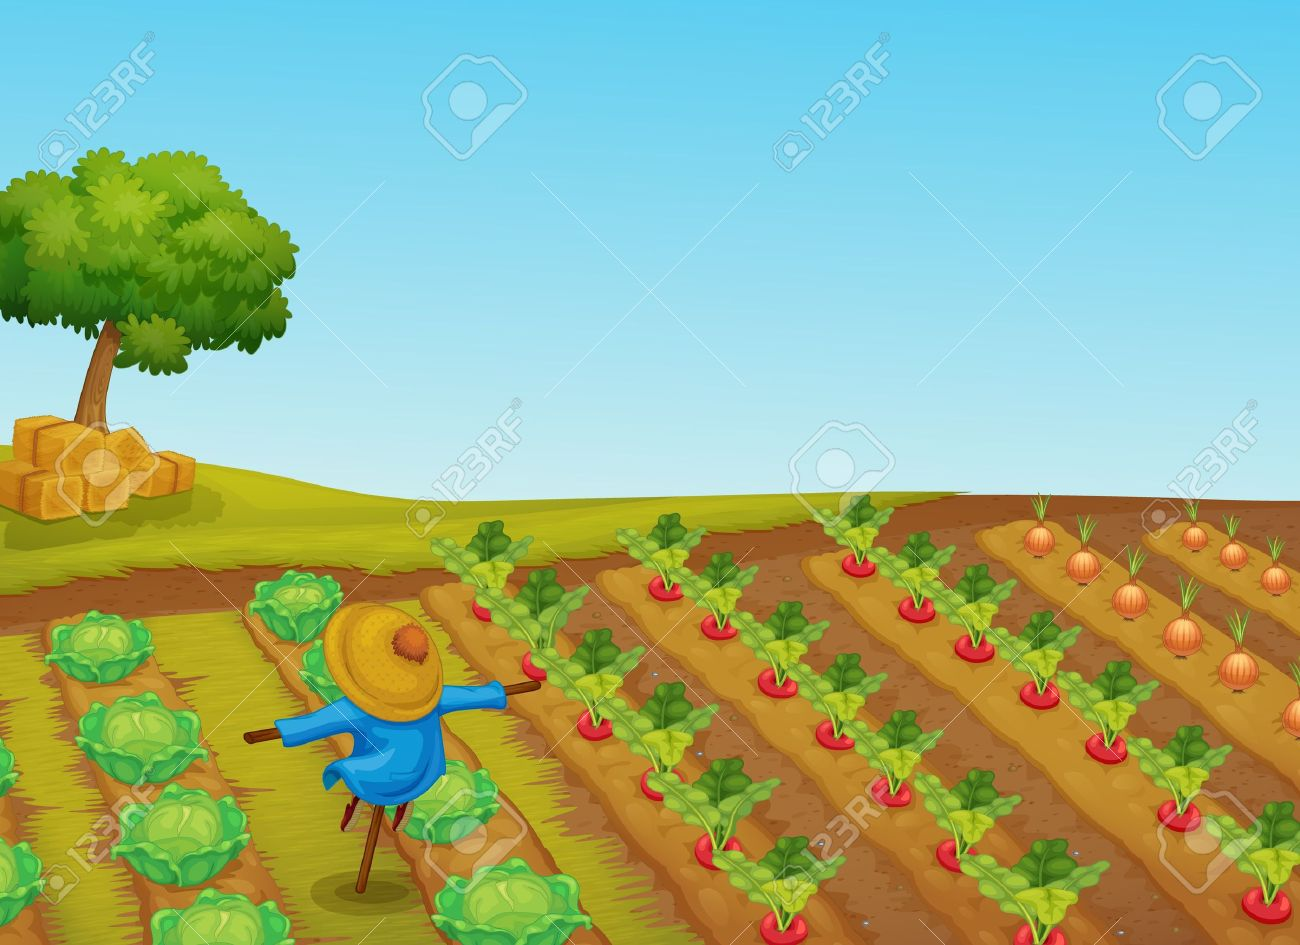 Illustration Of A Scarecrow In A Vegetable Patch Royalty Free ...